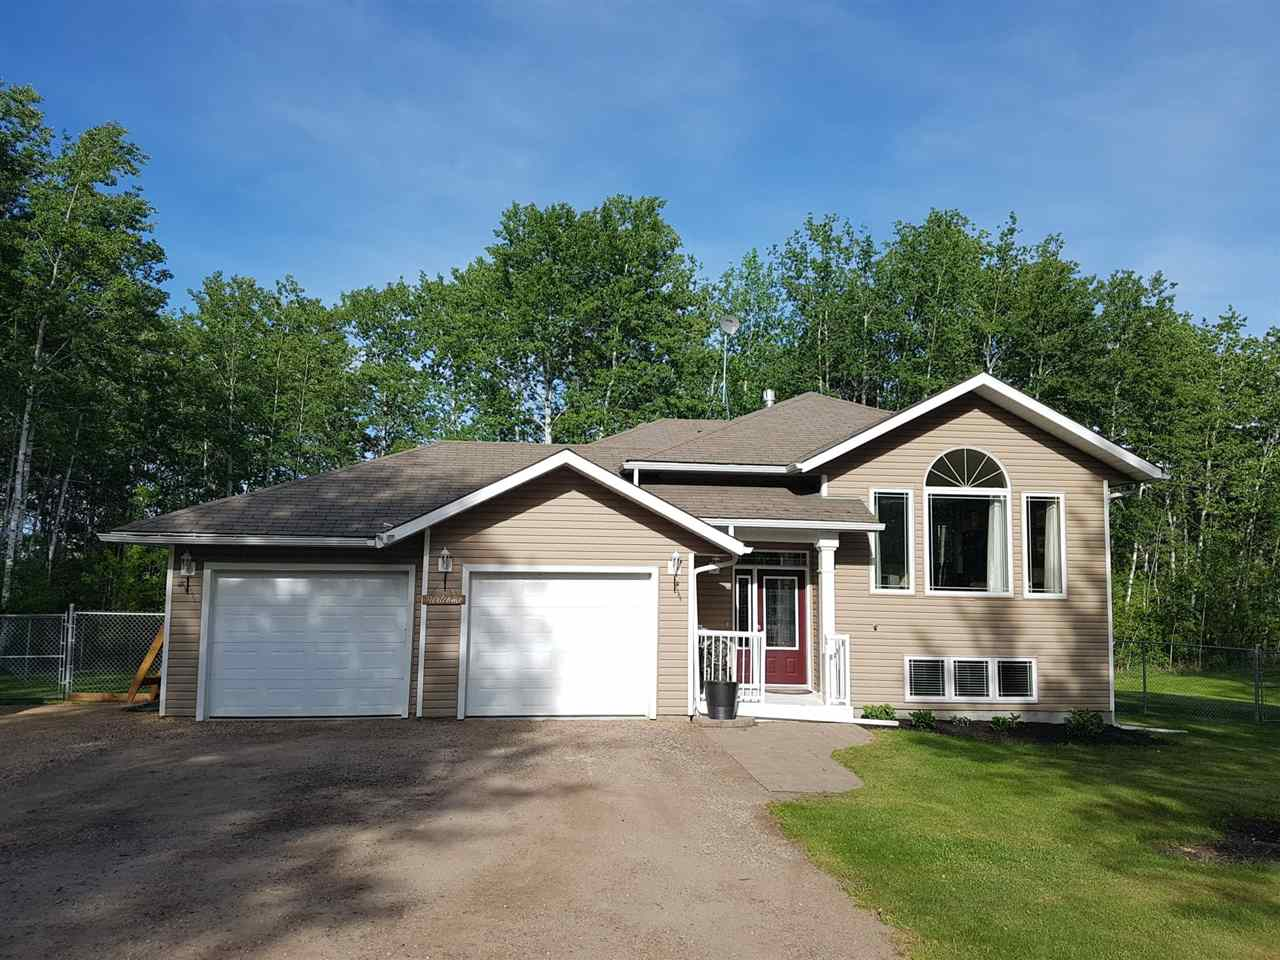 MLS® listing #E4156874 for sale located at 46 62331 Rge Rd 411A